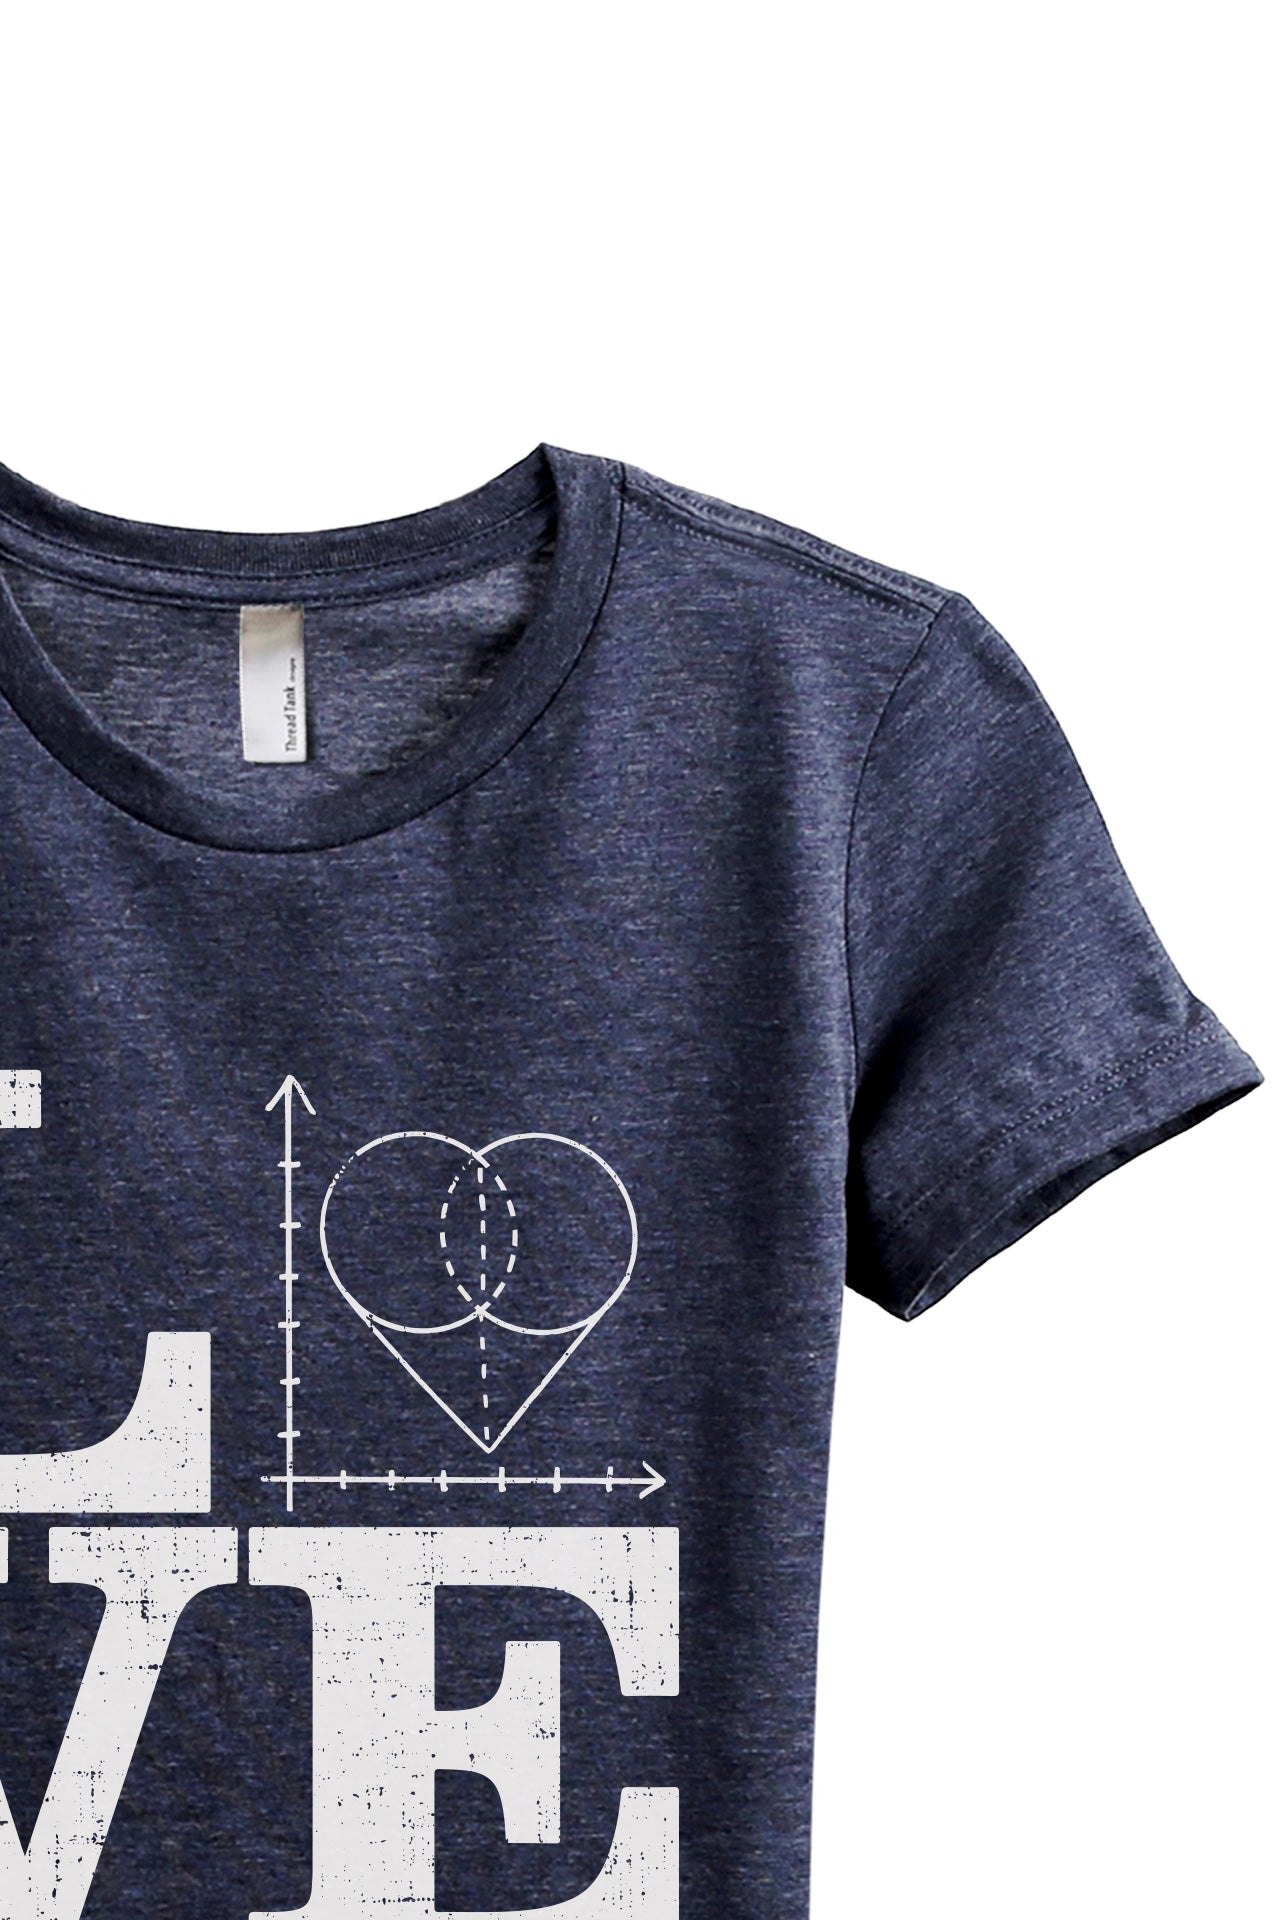 Teach Math LOVE Women's Relaxed Crewneck T-Shirt Top Tee Heather Navy